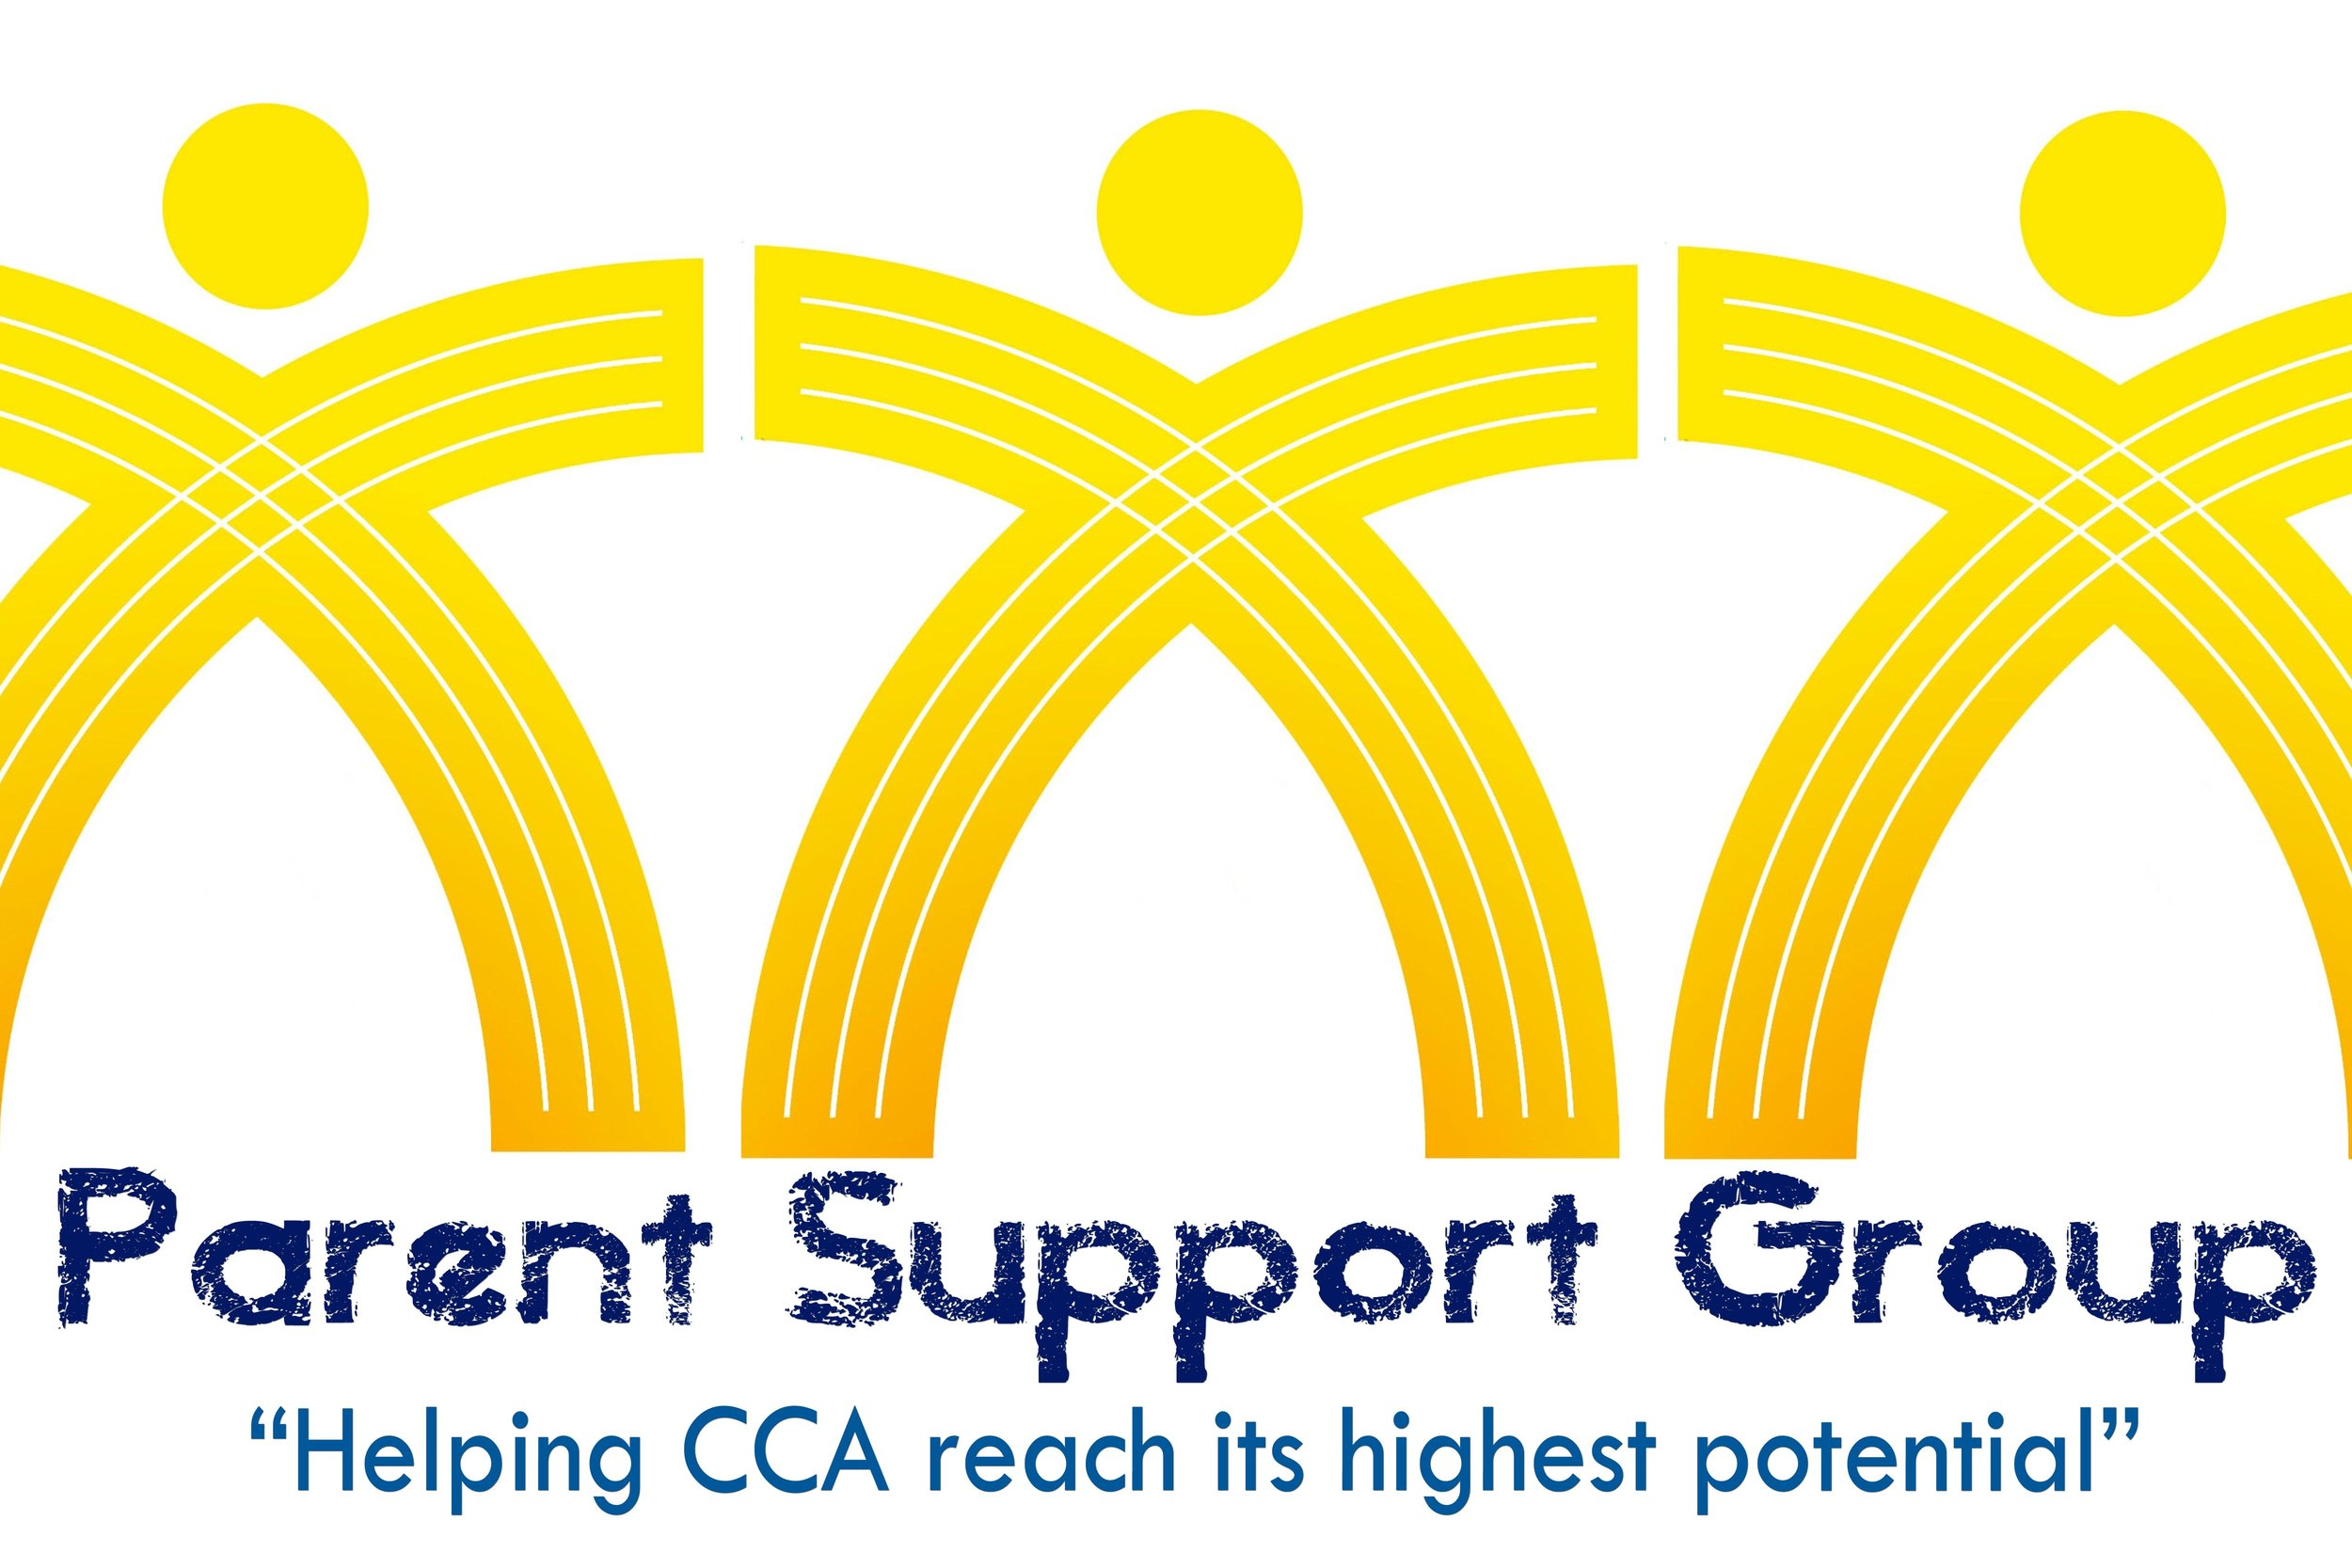 Parent Support Group (PSG) - The Parents Support Group (PSG) at CCA is a group of committed parents who wish to see the school continue to thrive in all aspects and meet together to discuss, plan, and implement ideas and programs.The PSG meets on the 1st Thursday of every month at 7:00pm.